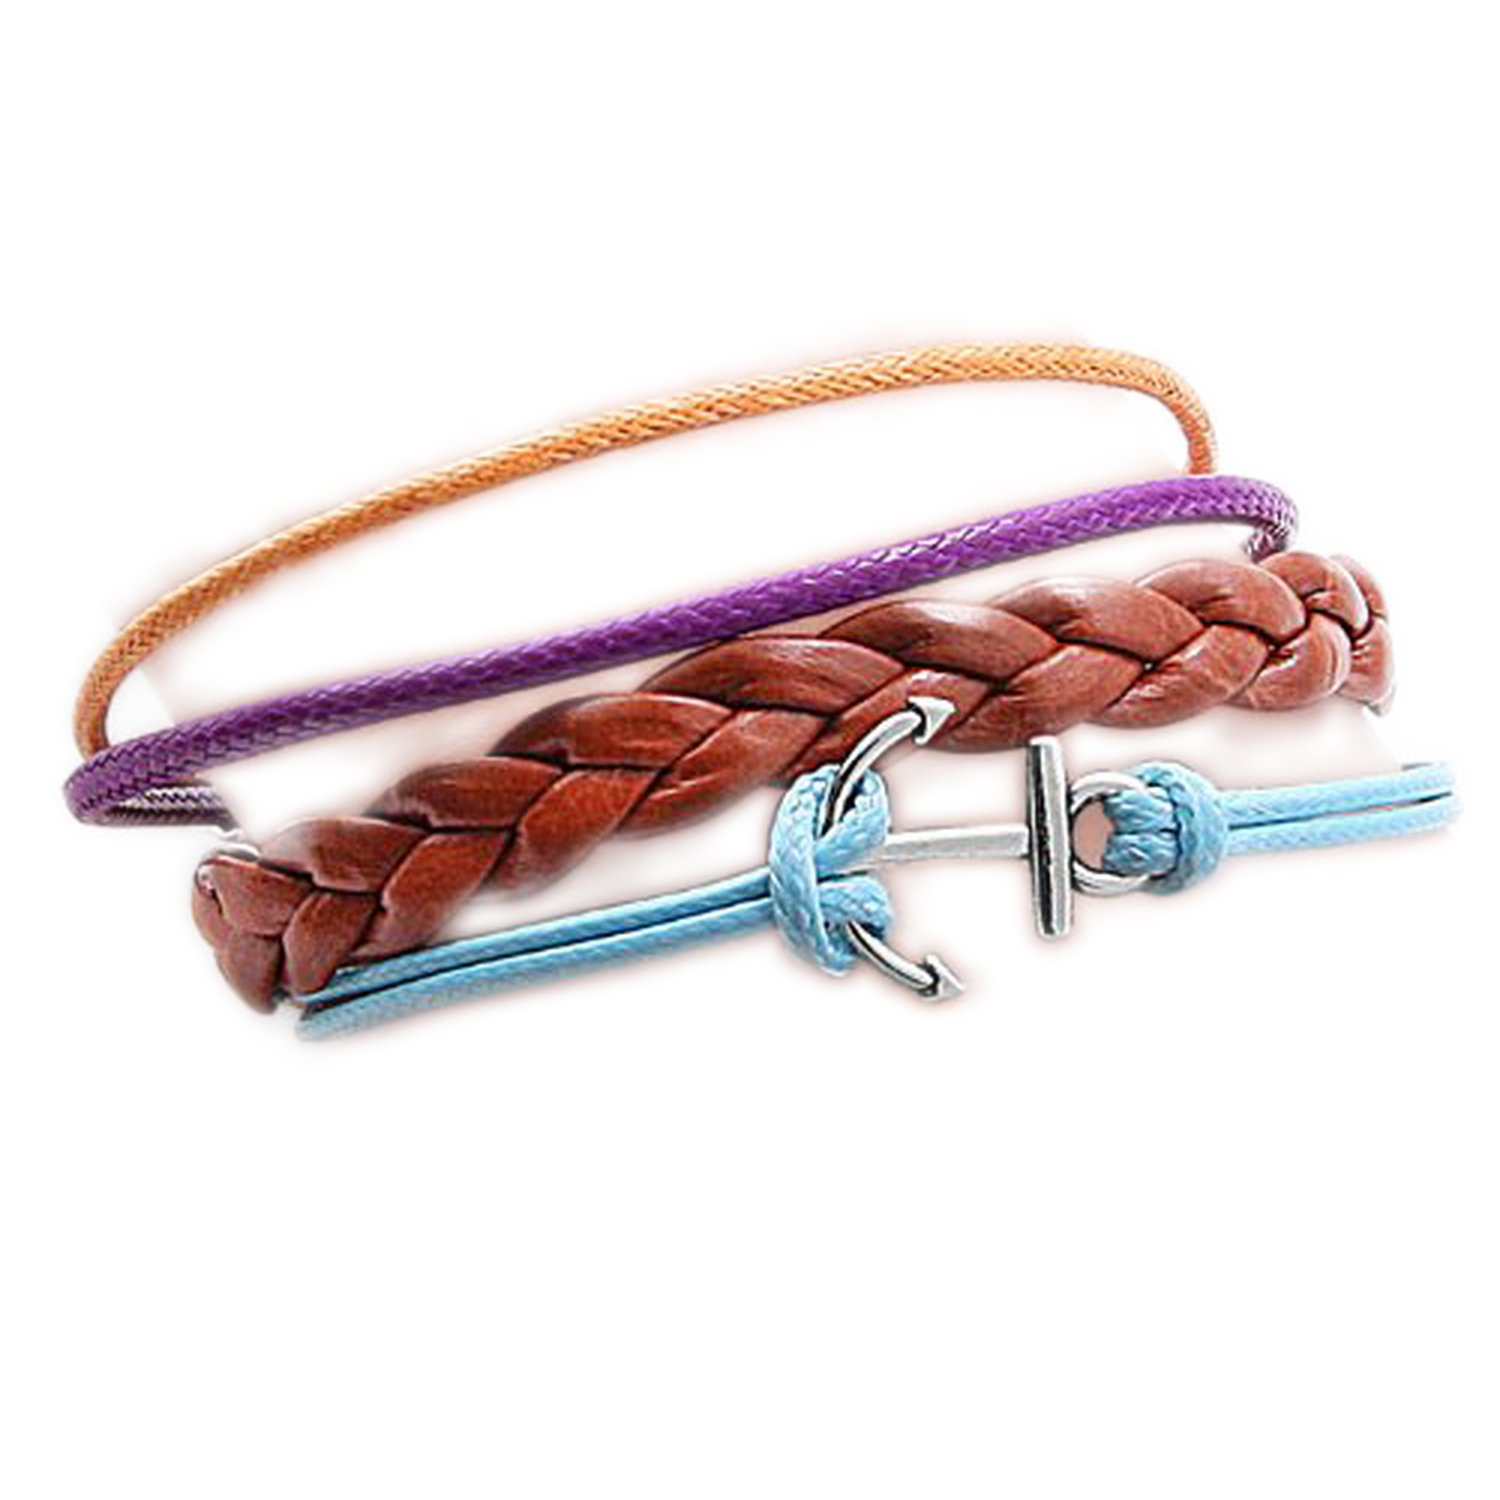 Brown Braided Faux Leather Bracelet with SIlver Tone Metal Anchor Pendant